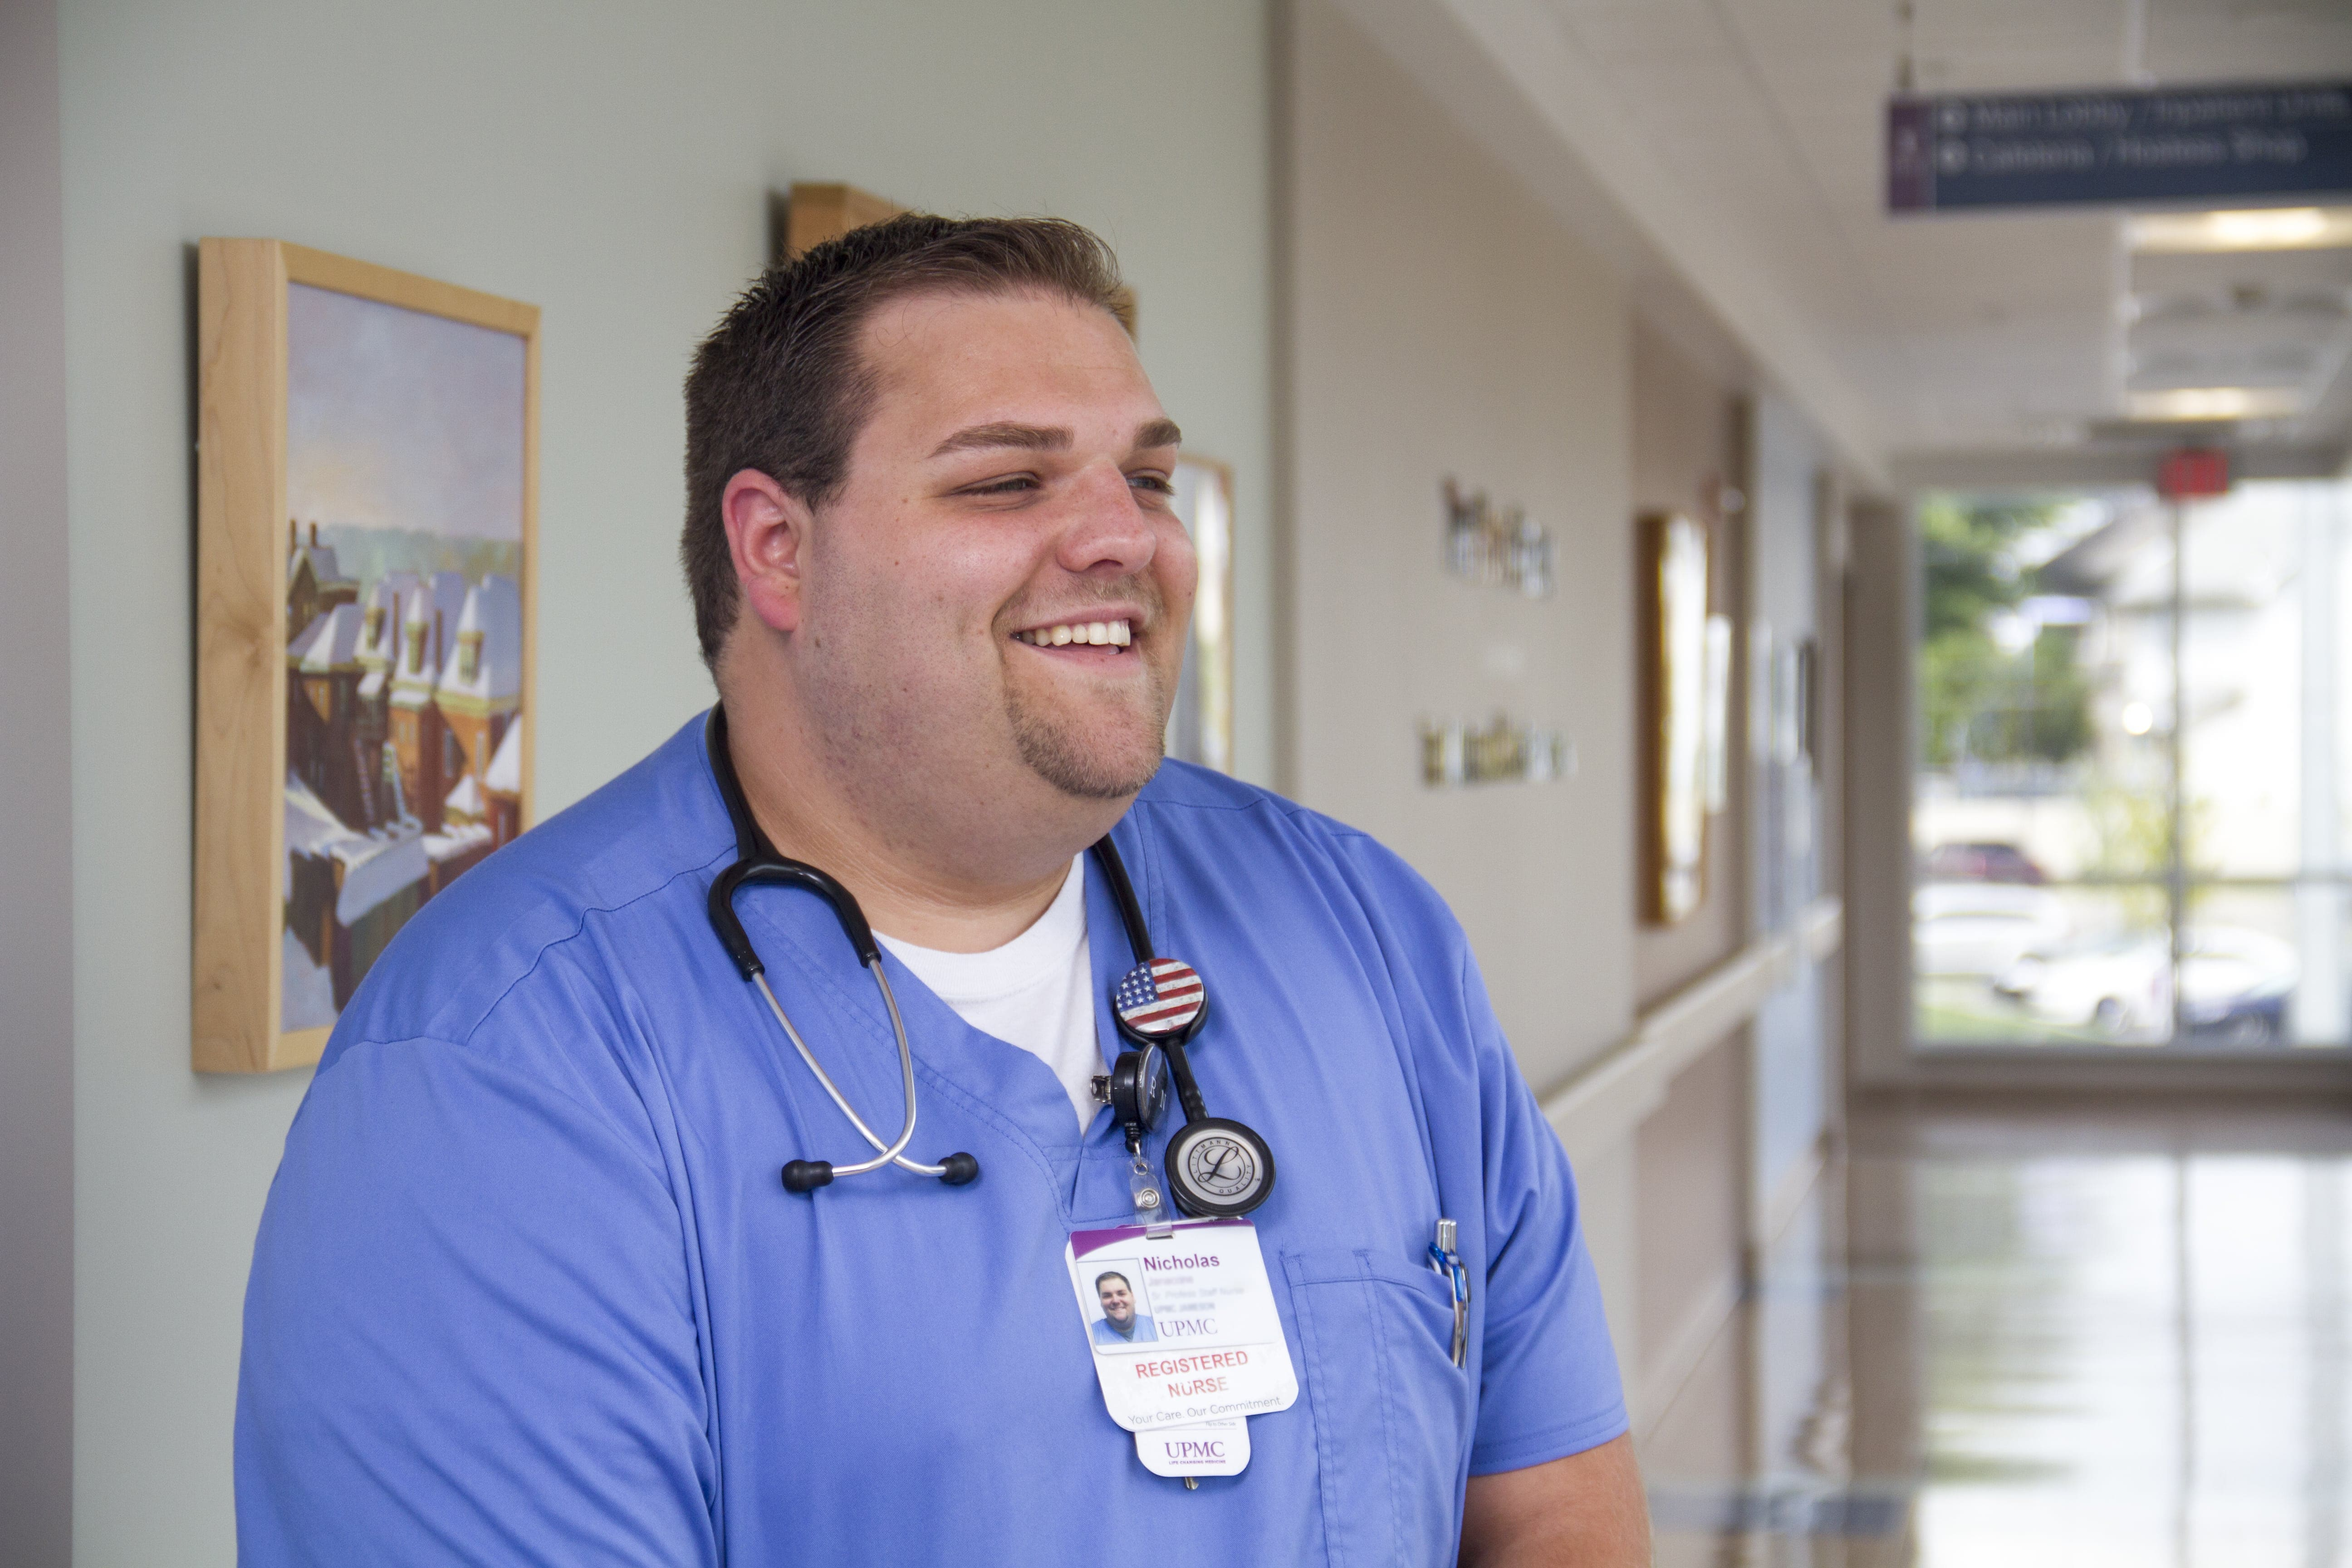 Graduate Nurse standing in the hallway of hospital, smiling